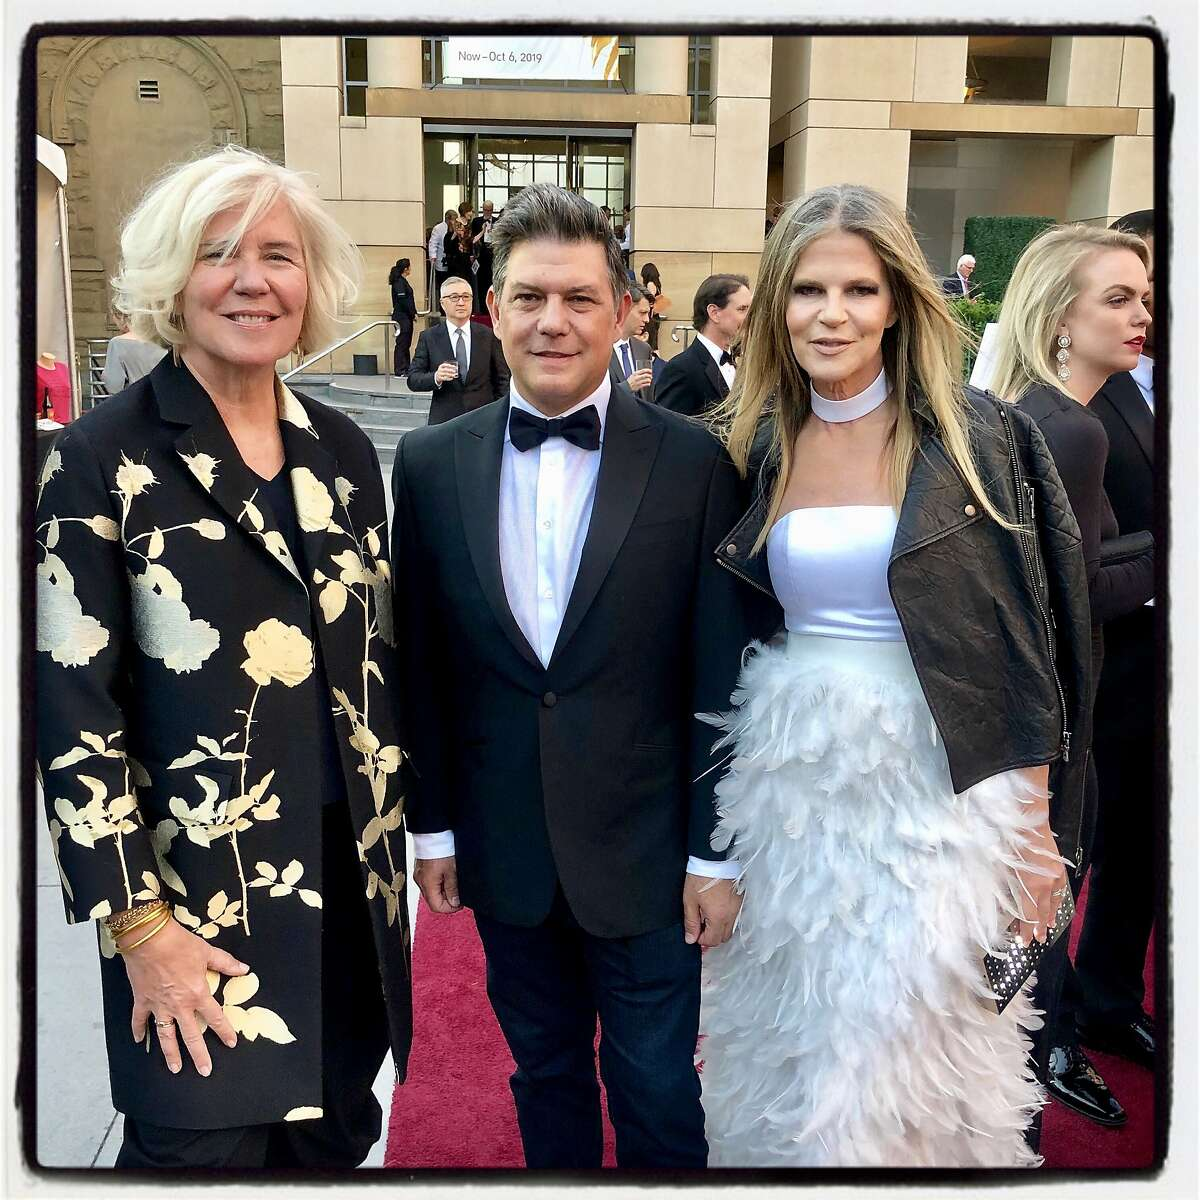 San Jose Museum of Art Executive Director Sayre Patton (left) with gala honoree Leo Villareal and his, Yvonne Force Villareal. Sept. 21, 2019.